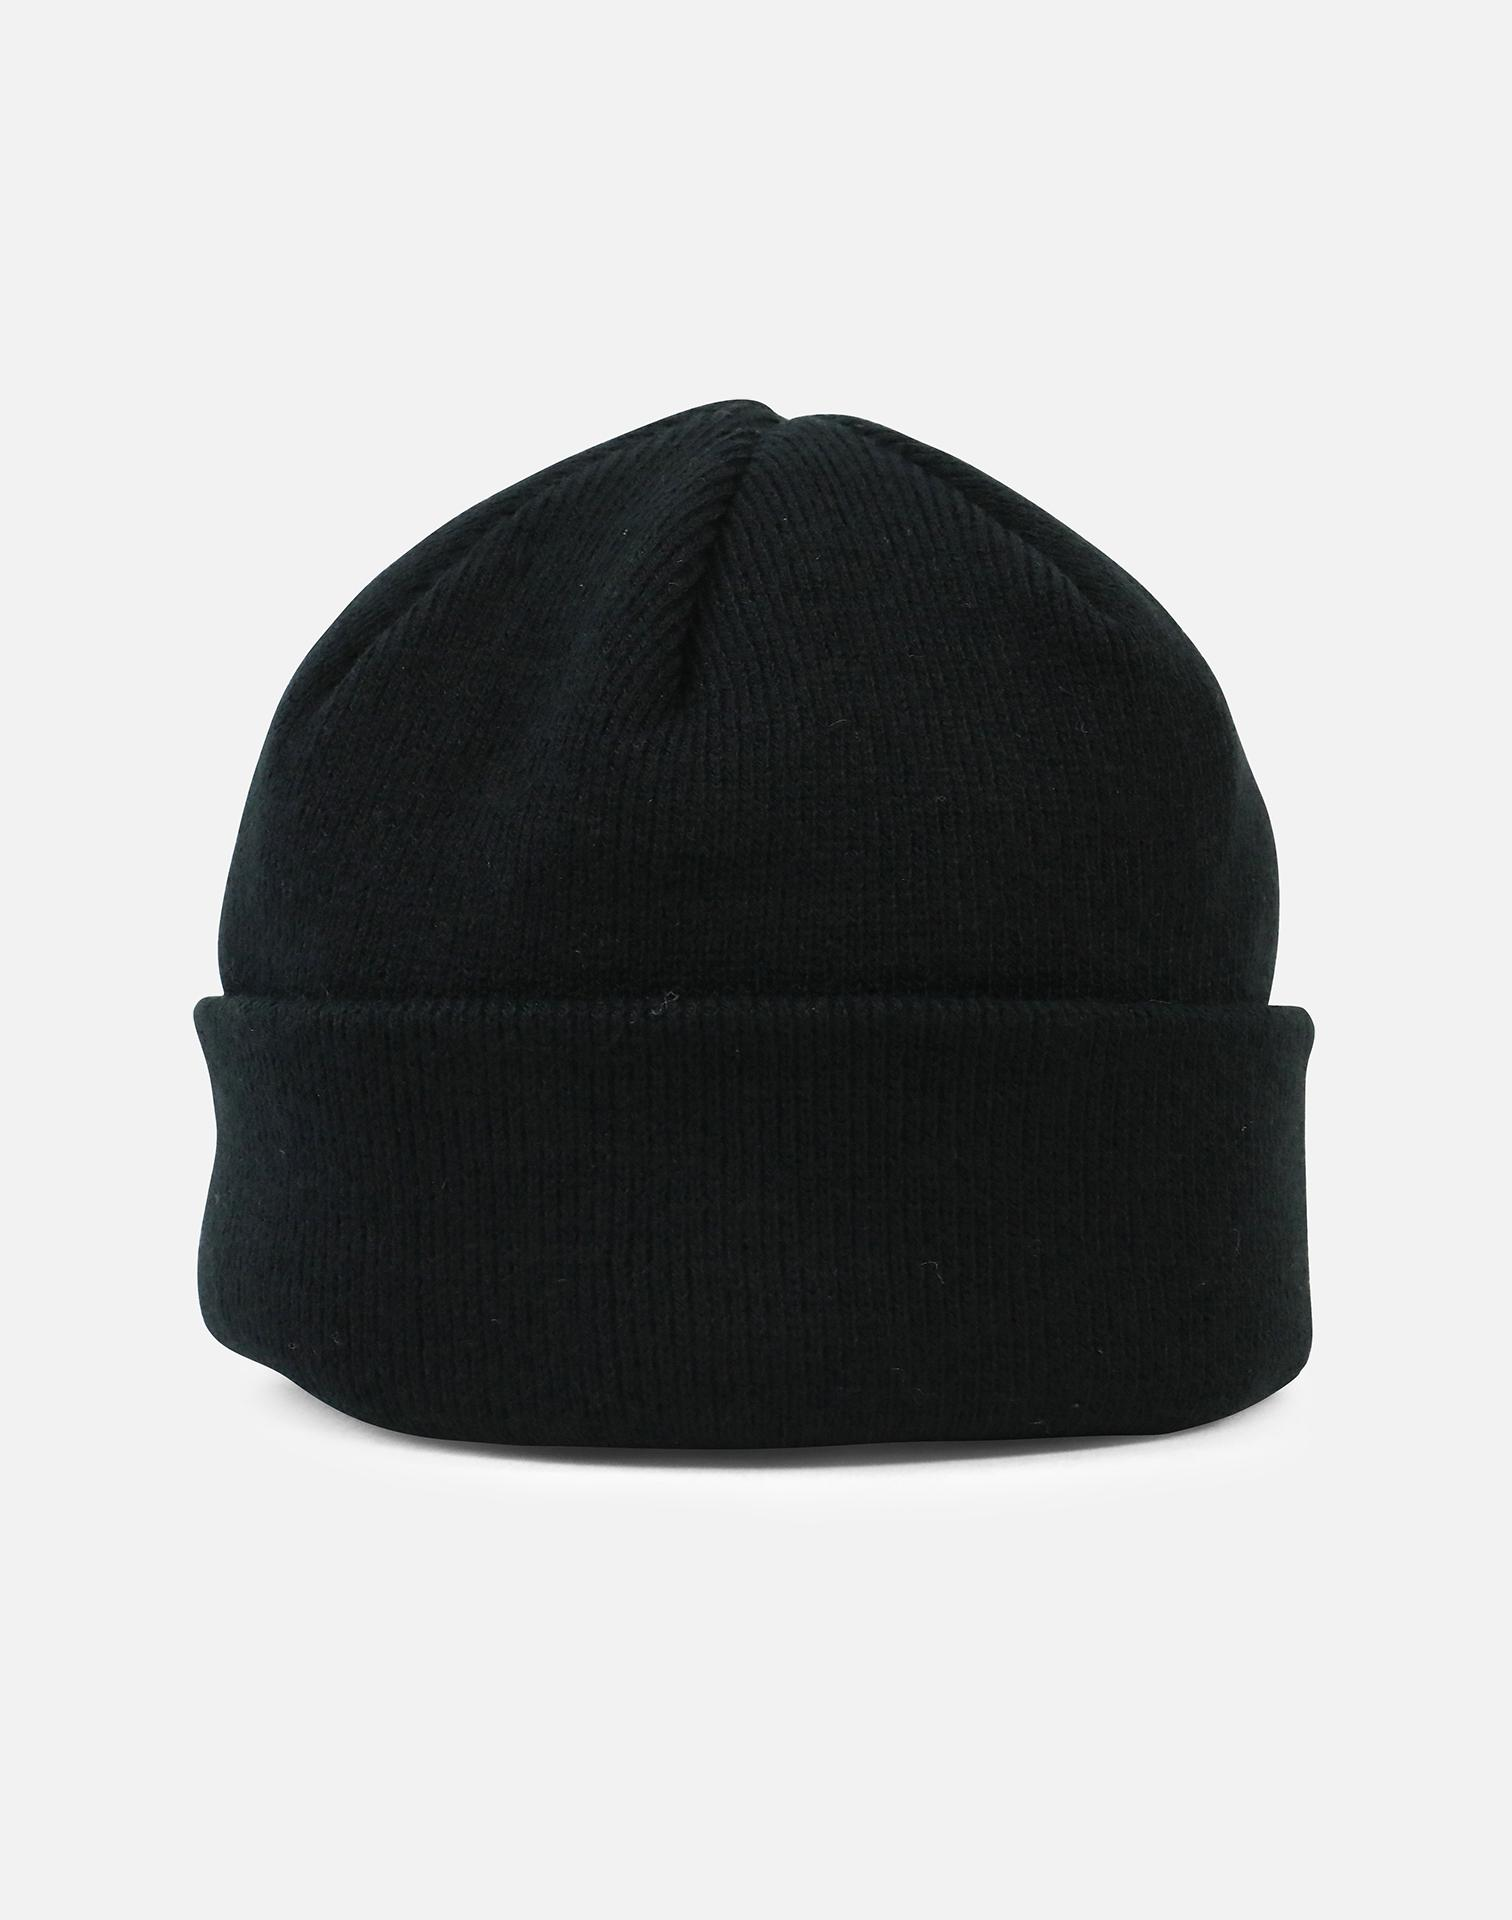 124cb56e073 Lyst - Adidas Starboard Knit Beanie in Black for Men